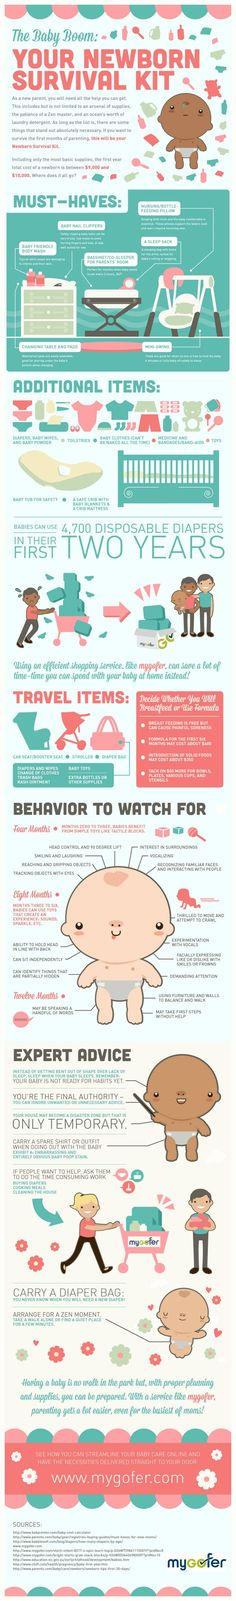 The Baby Boom: Your Newborn Survival Kit (Infographic)